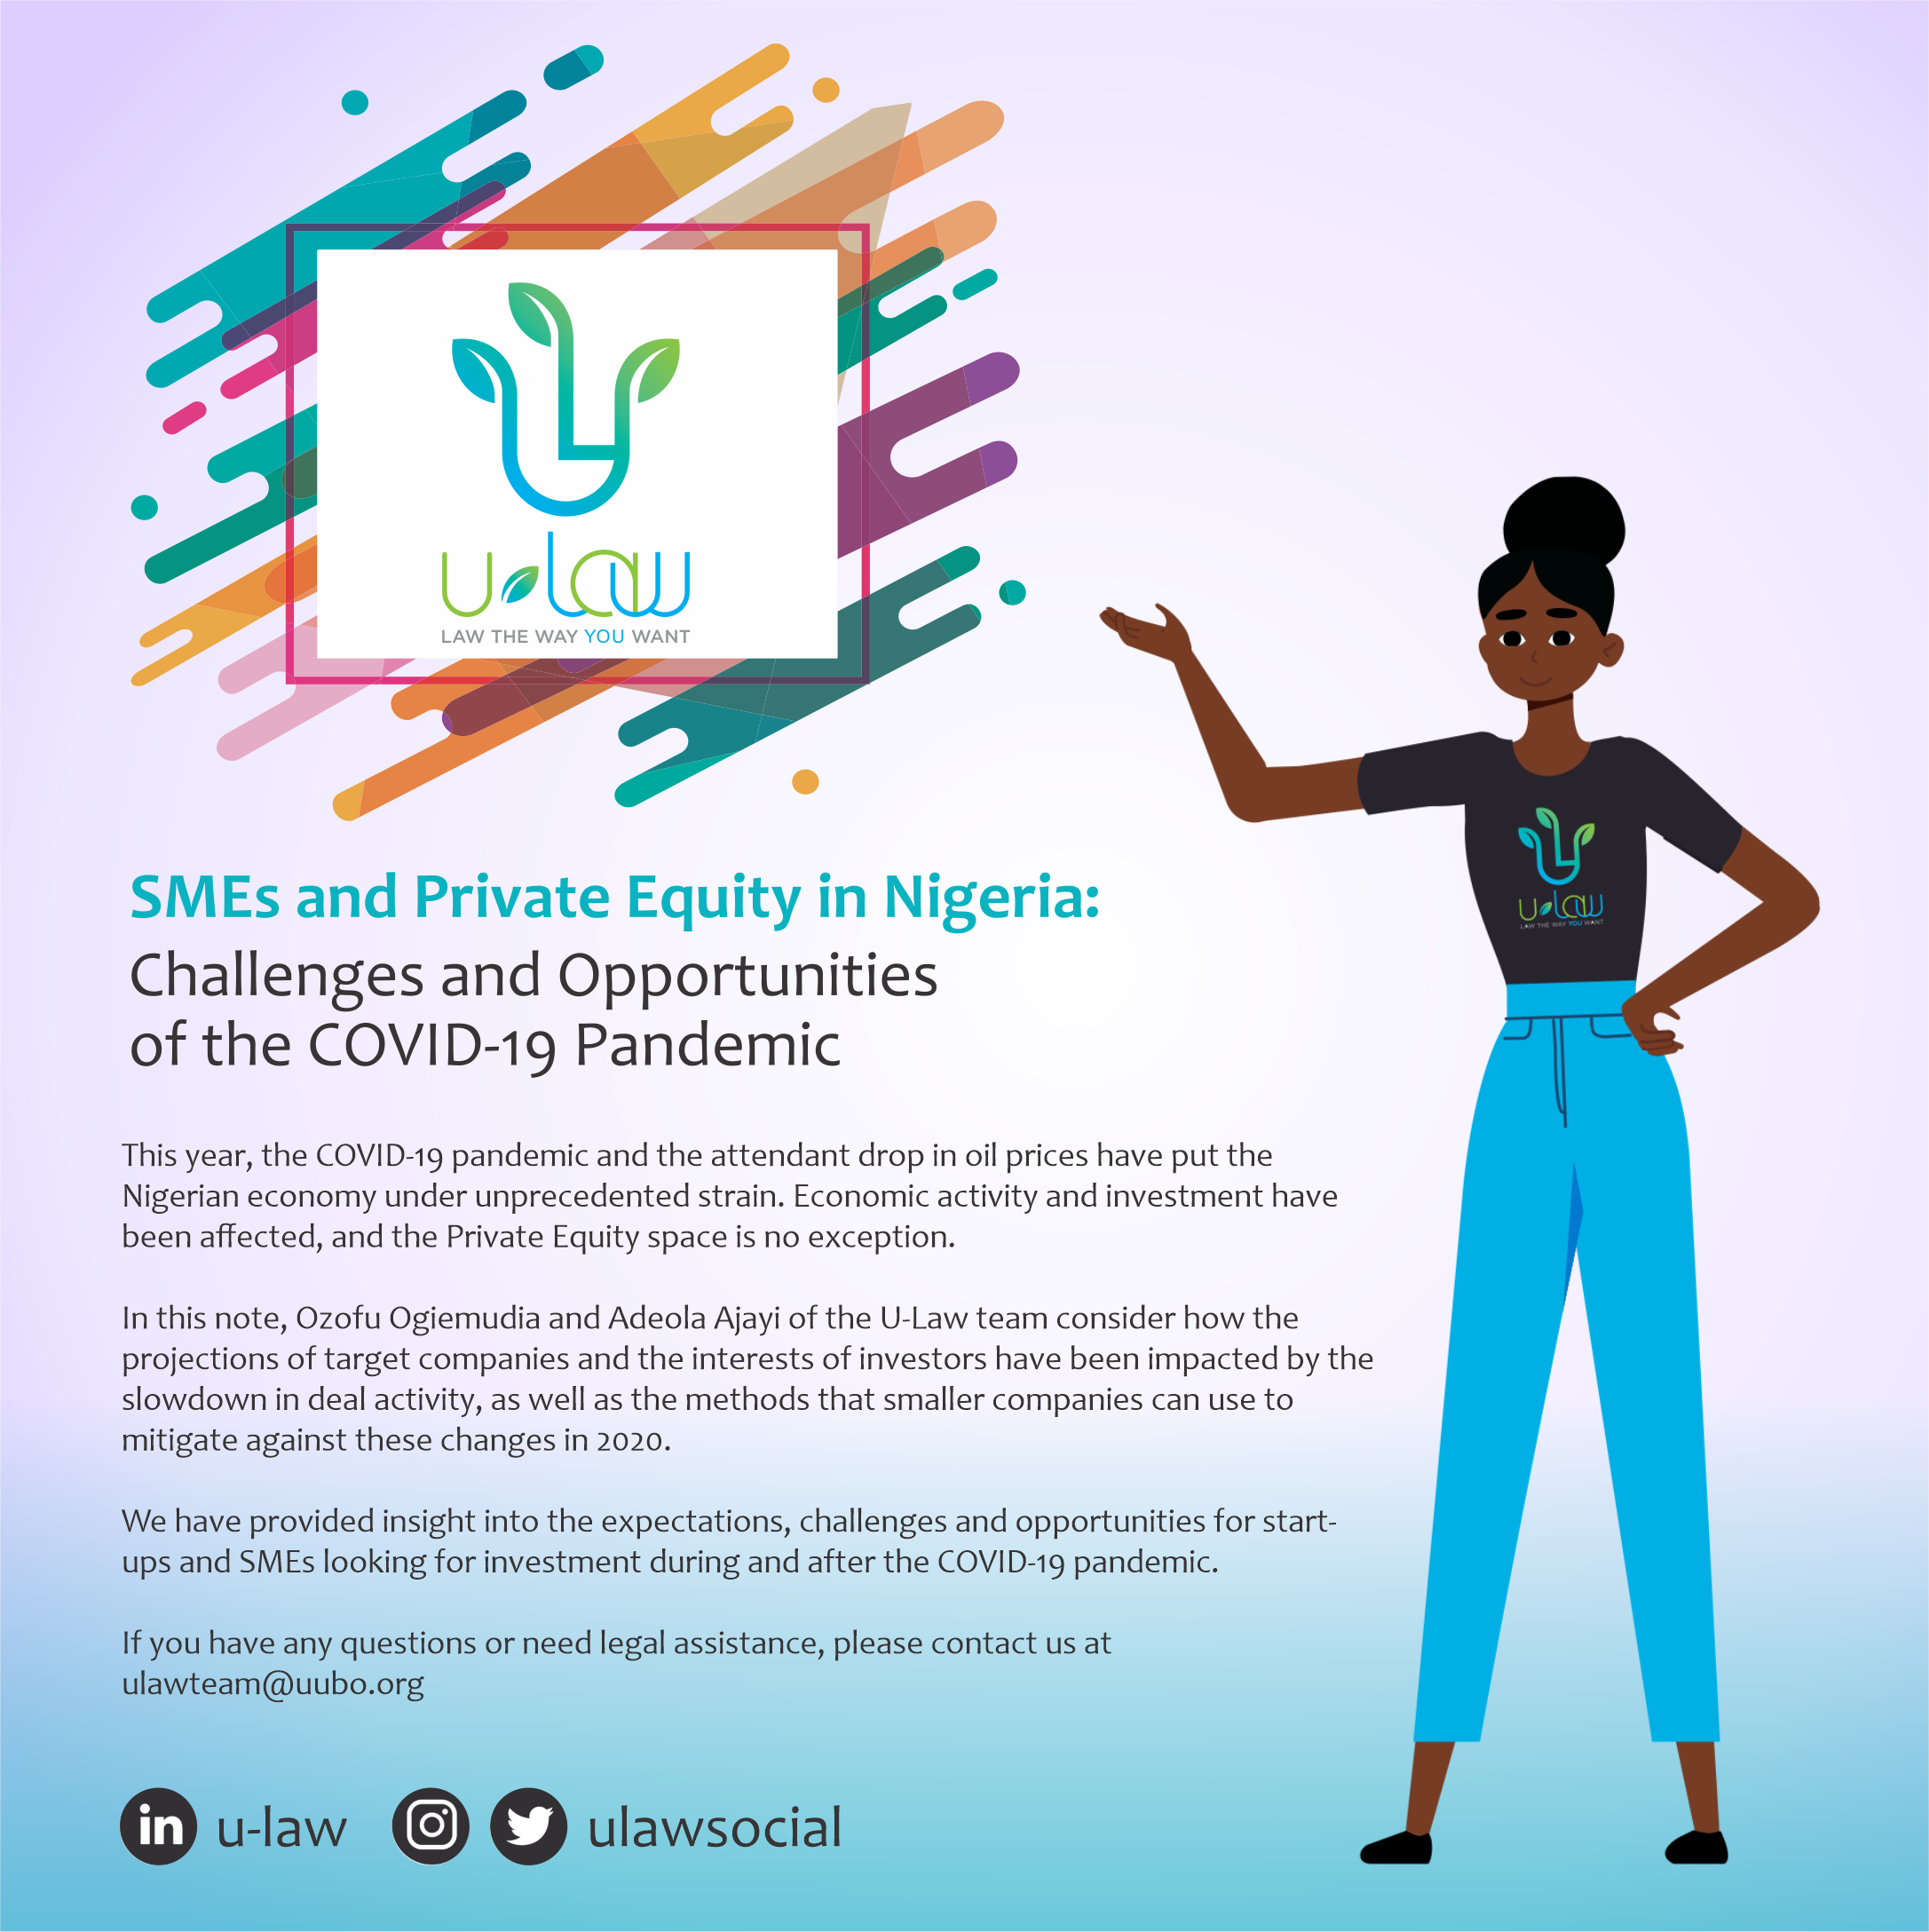 SMEs and Private Equity in Nigeria Challenges and Opportunities of the COVID-19 Pandemic